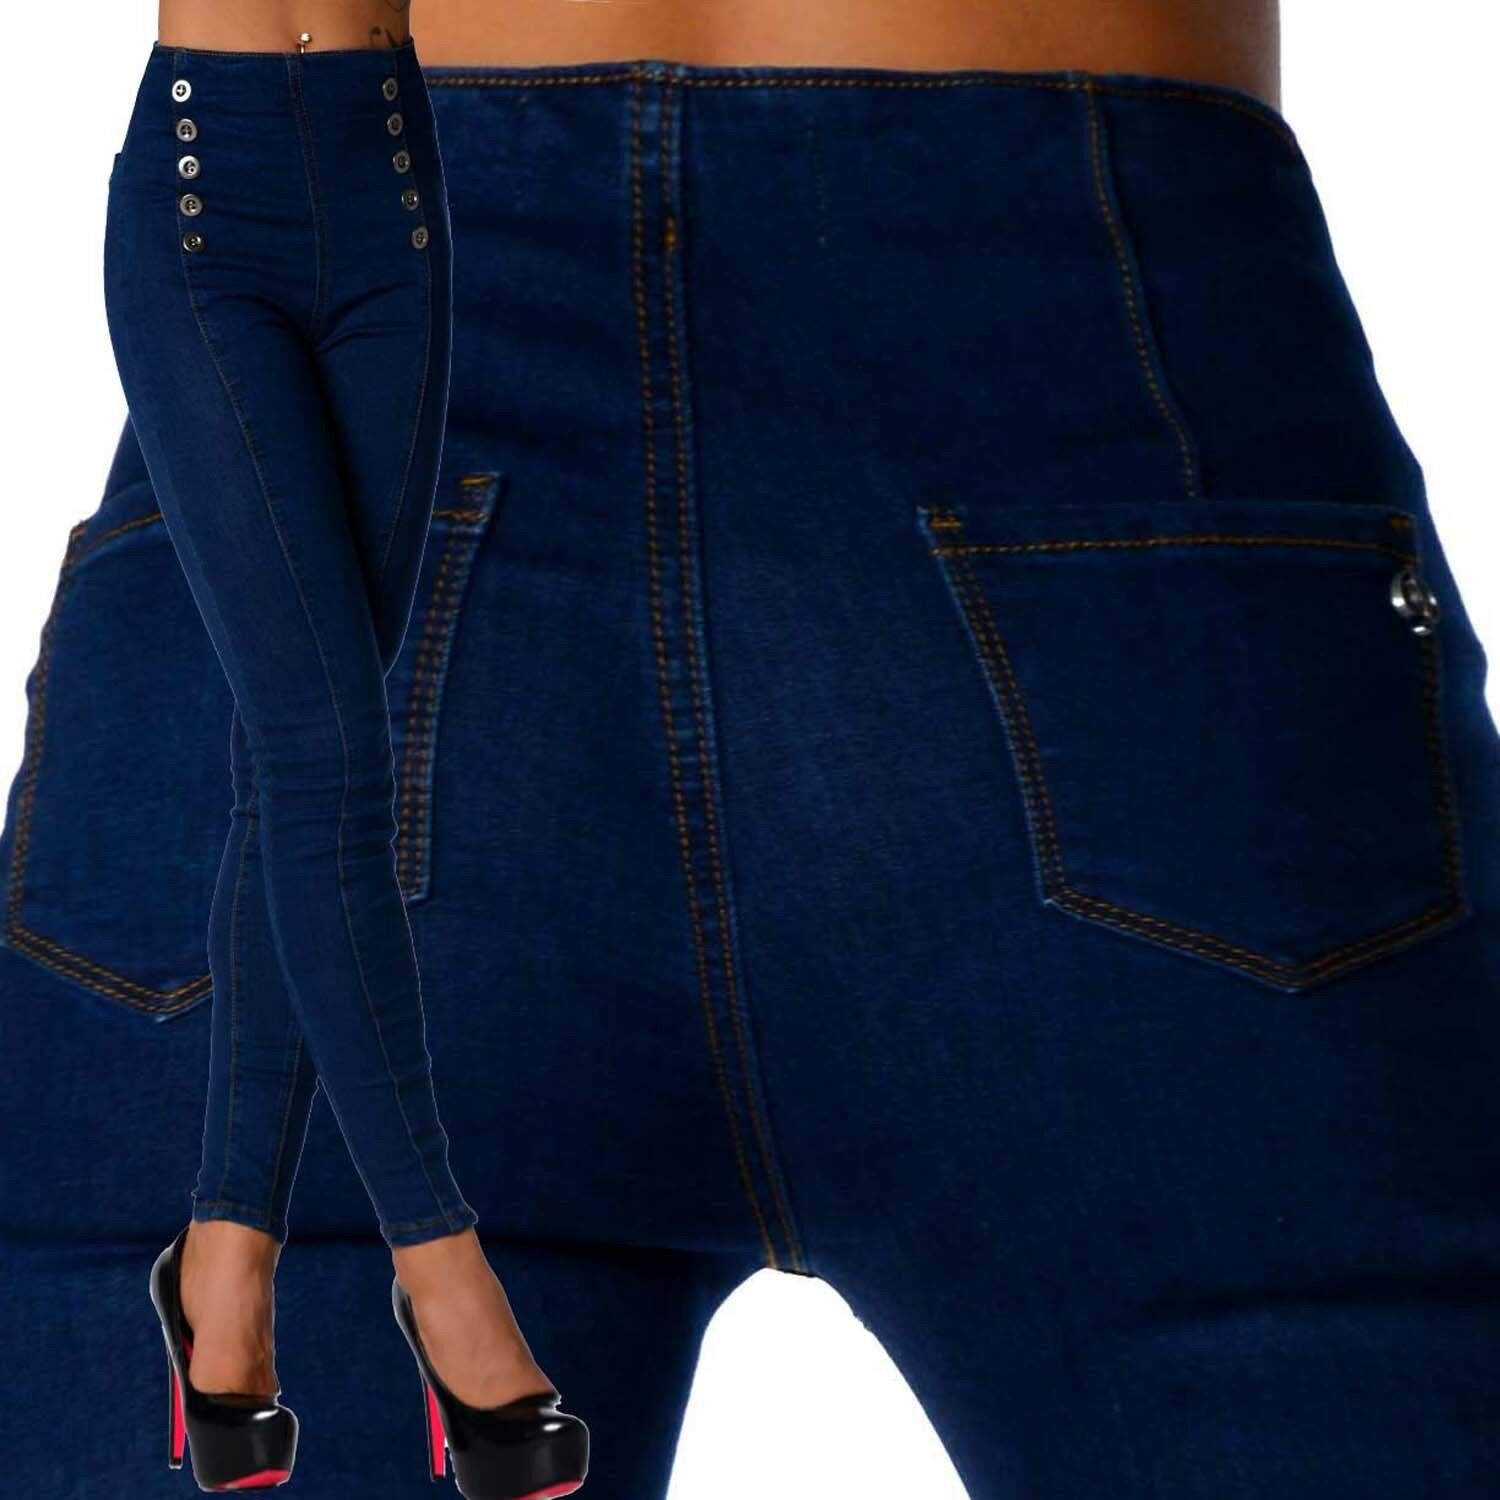 Sexy New Women's Stretchy Navy Jeans Trousers High Waisted Skinny C 131